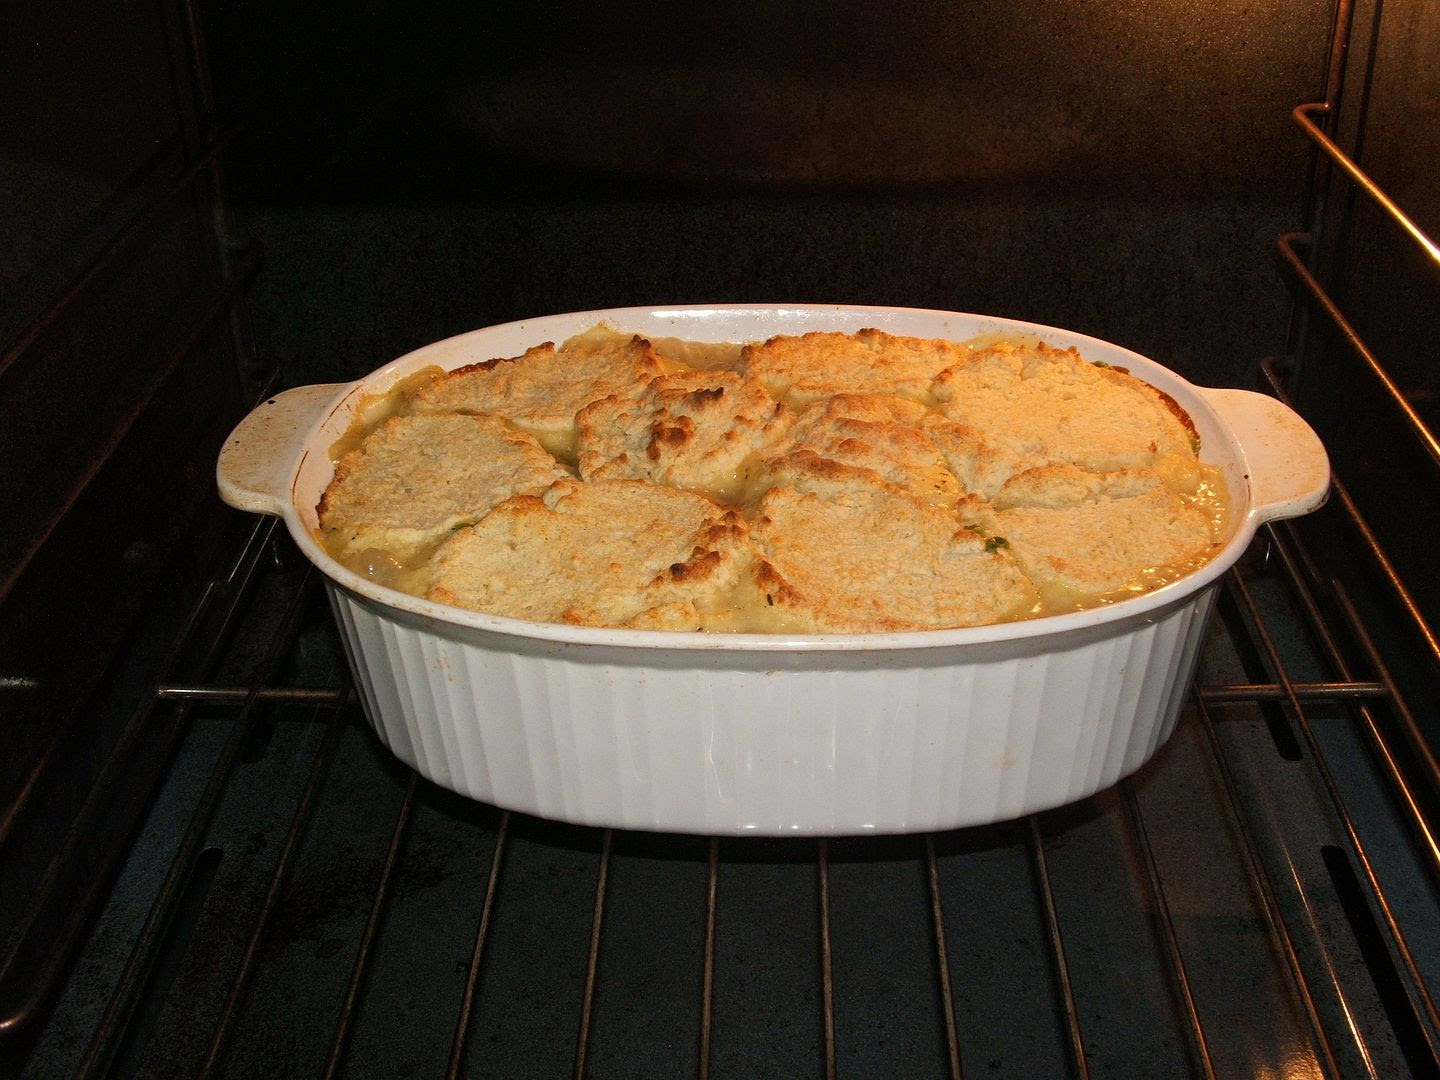 Springtime Chicken Pot Pie by Angie Ouellette-Tower for godsgrowinggarden.com photo 010_zps0d7716f3.jpg